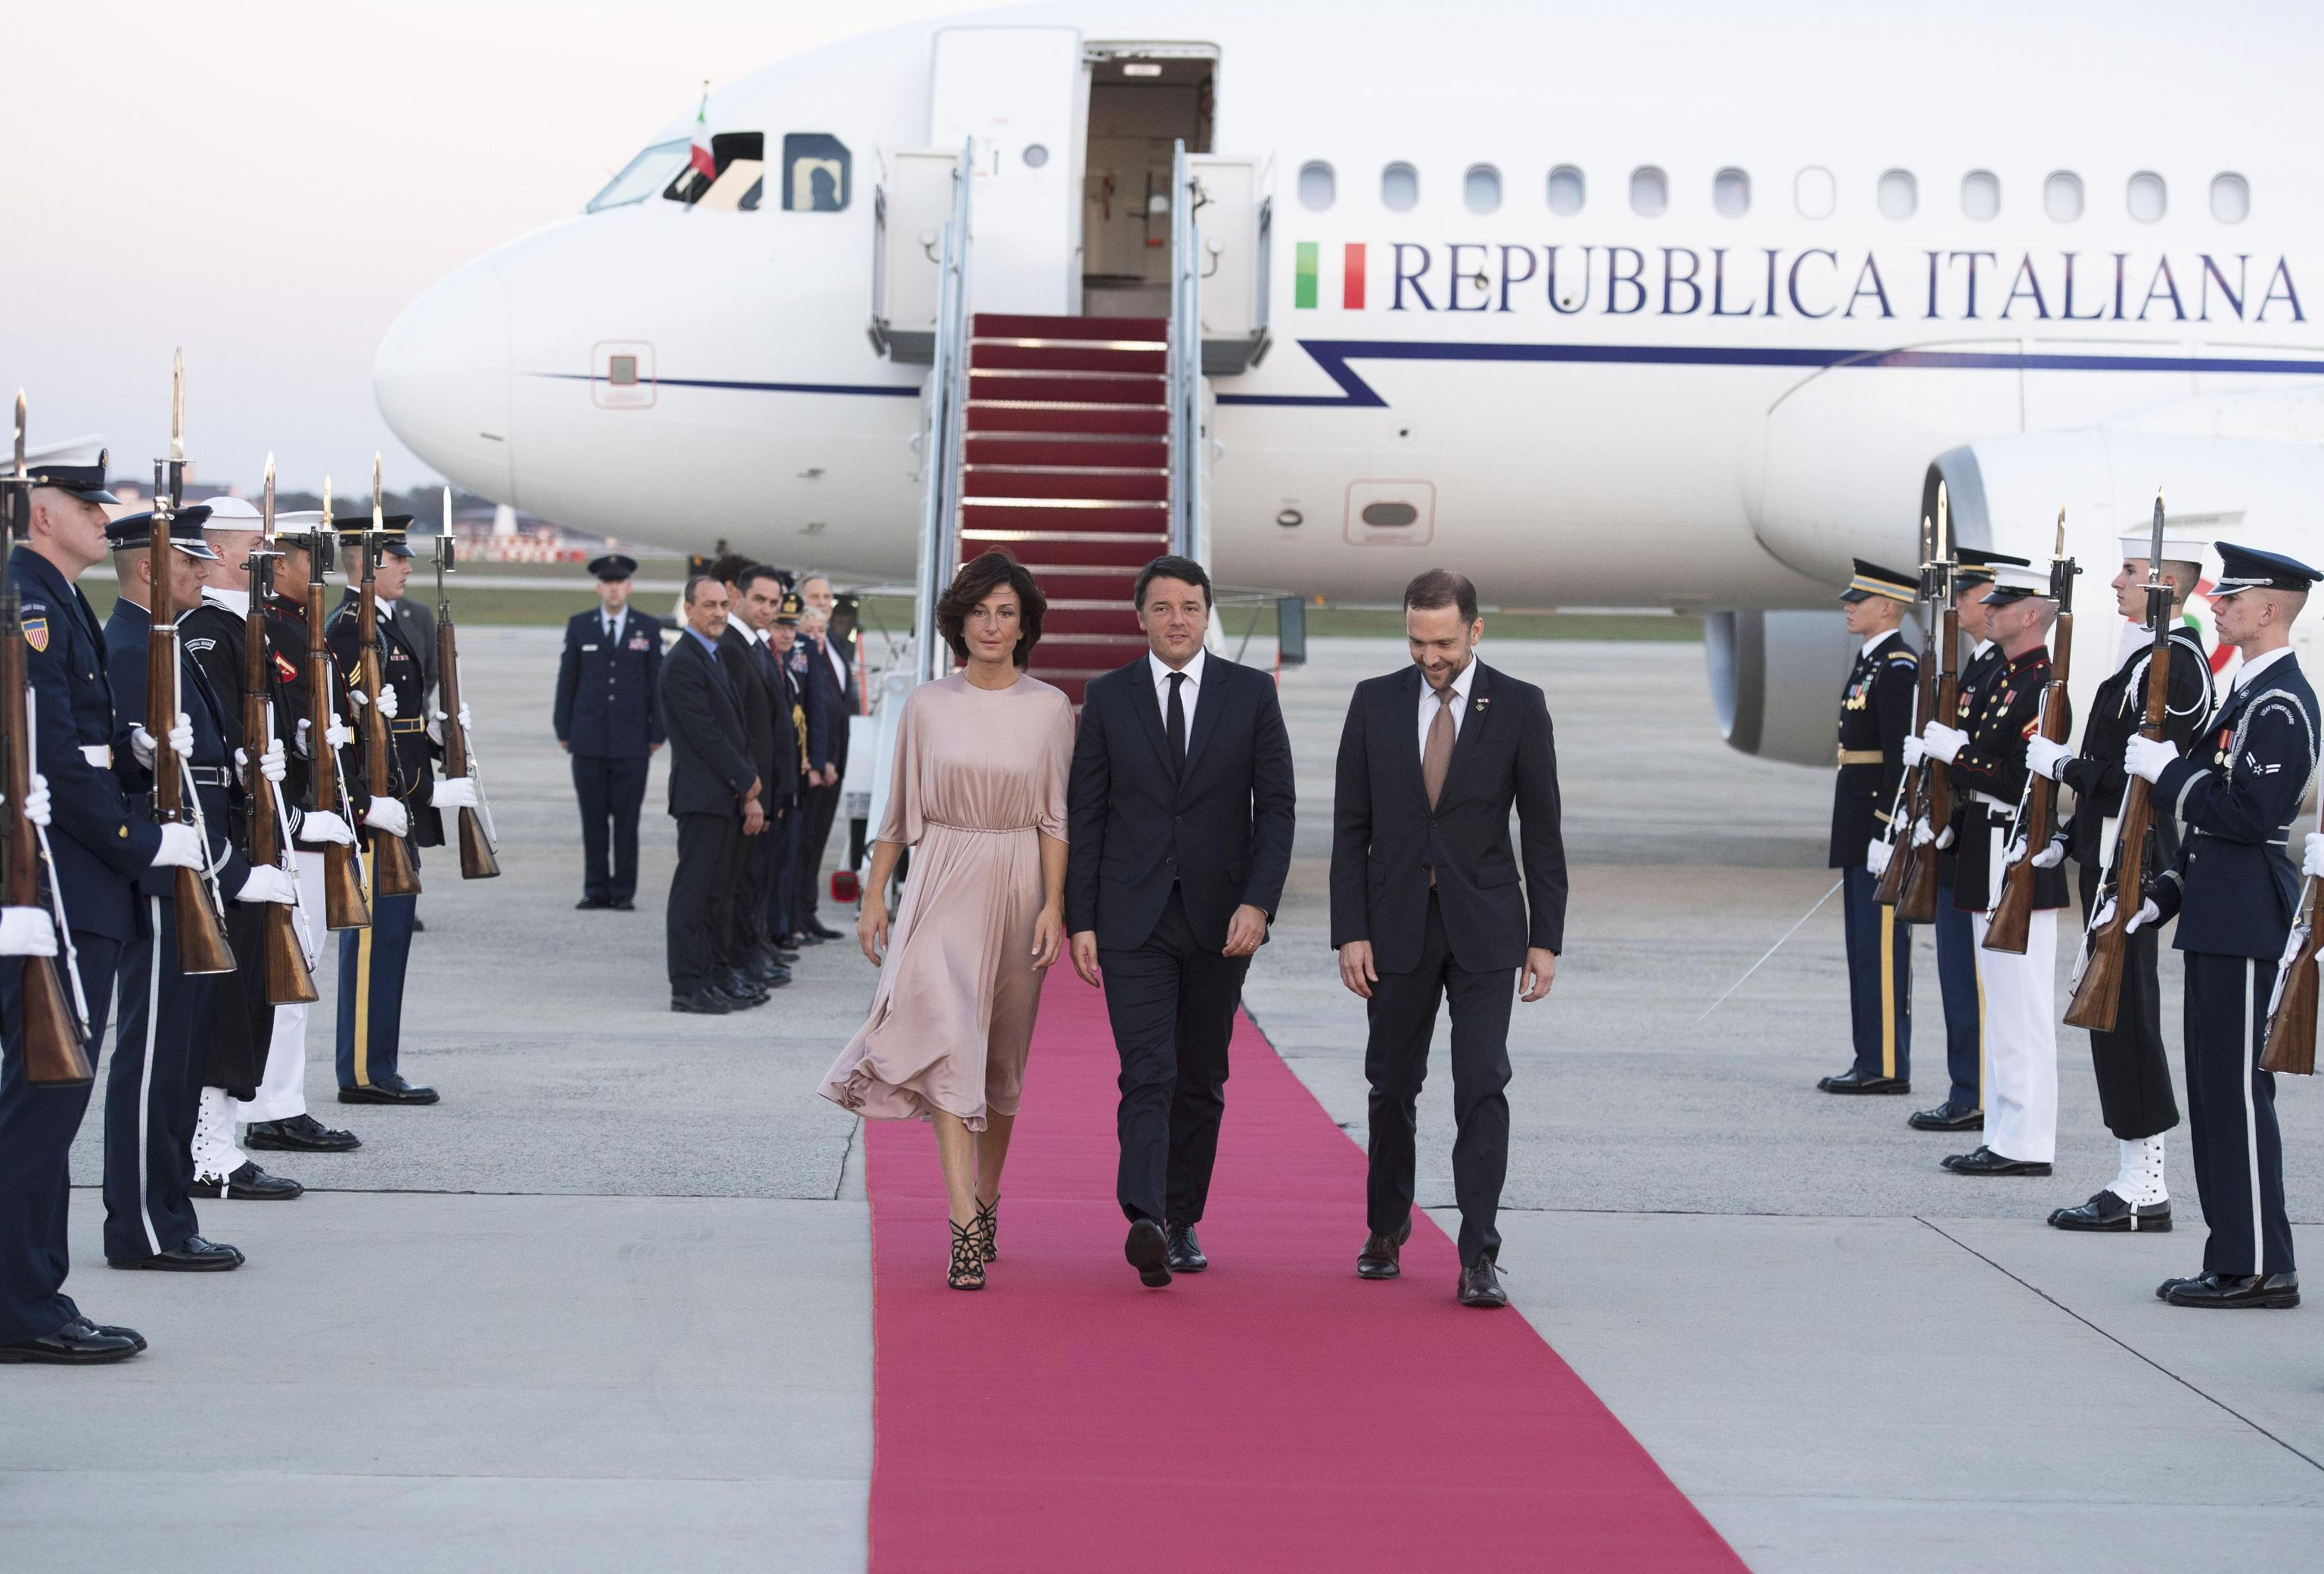 La delegazione italiana guidata da Renzi a Washington per la  State dinner  con Obama